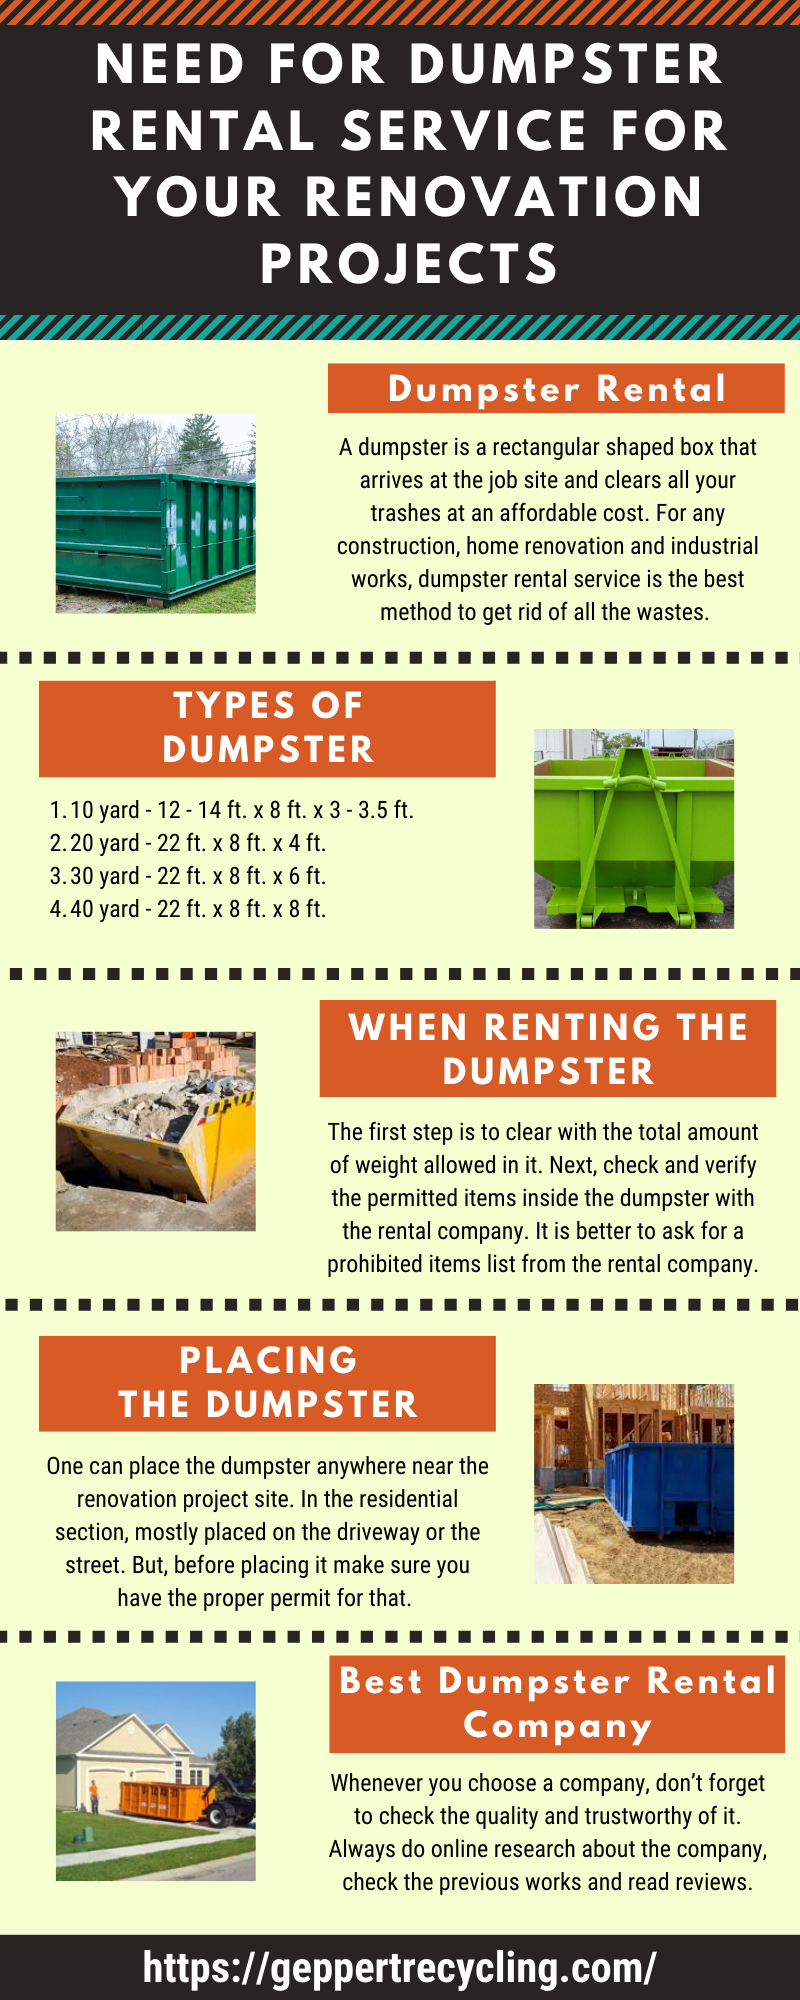 Need For Dumpster Rental Service For Your Renovation Projects Dumpster Rental Renovation Project Dumpster